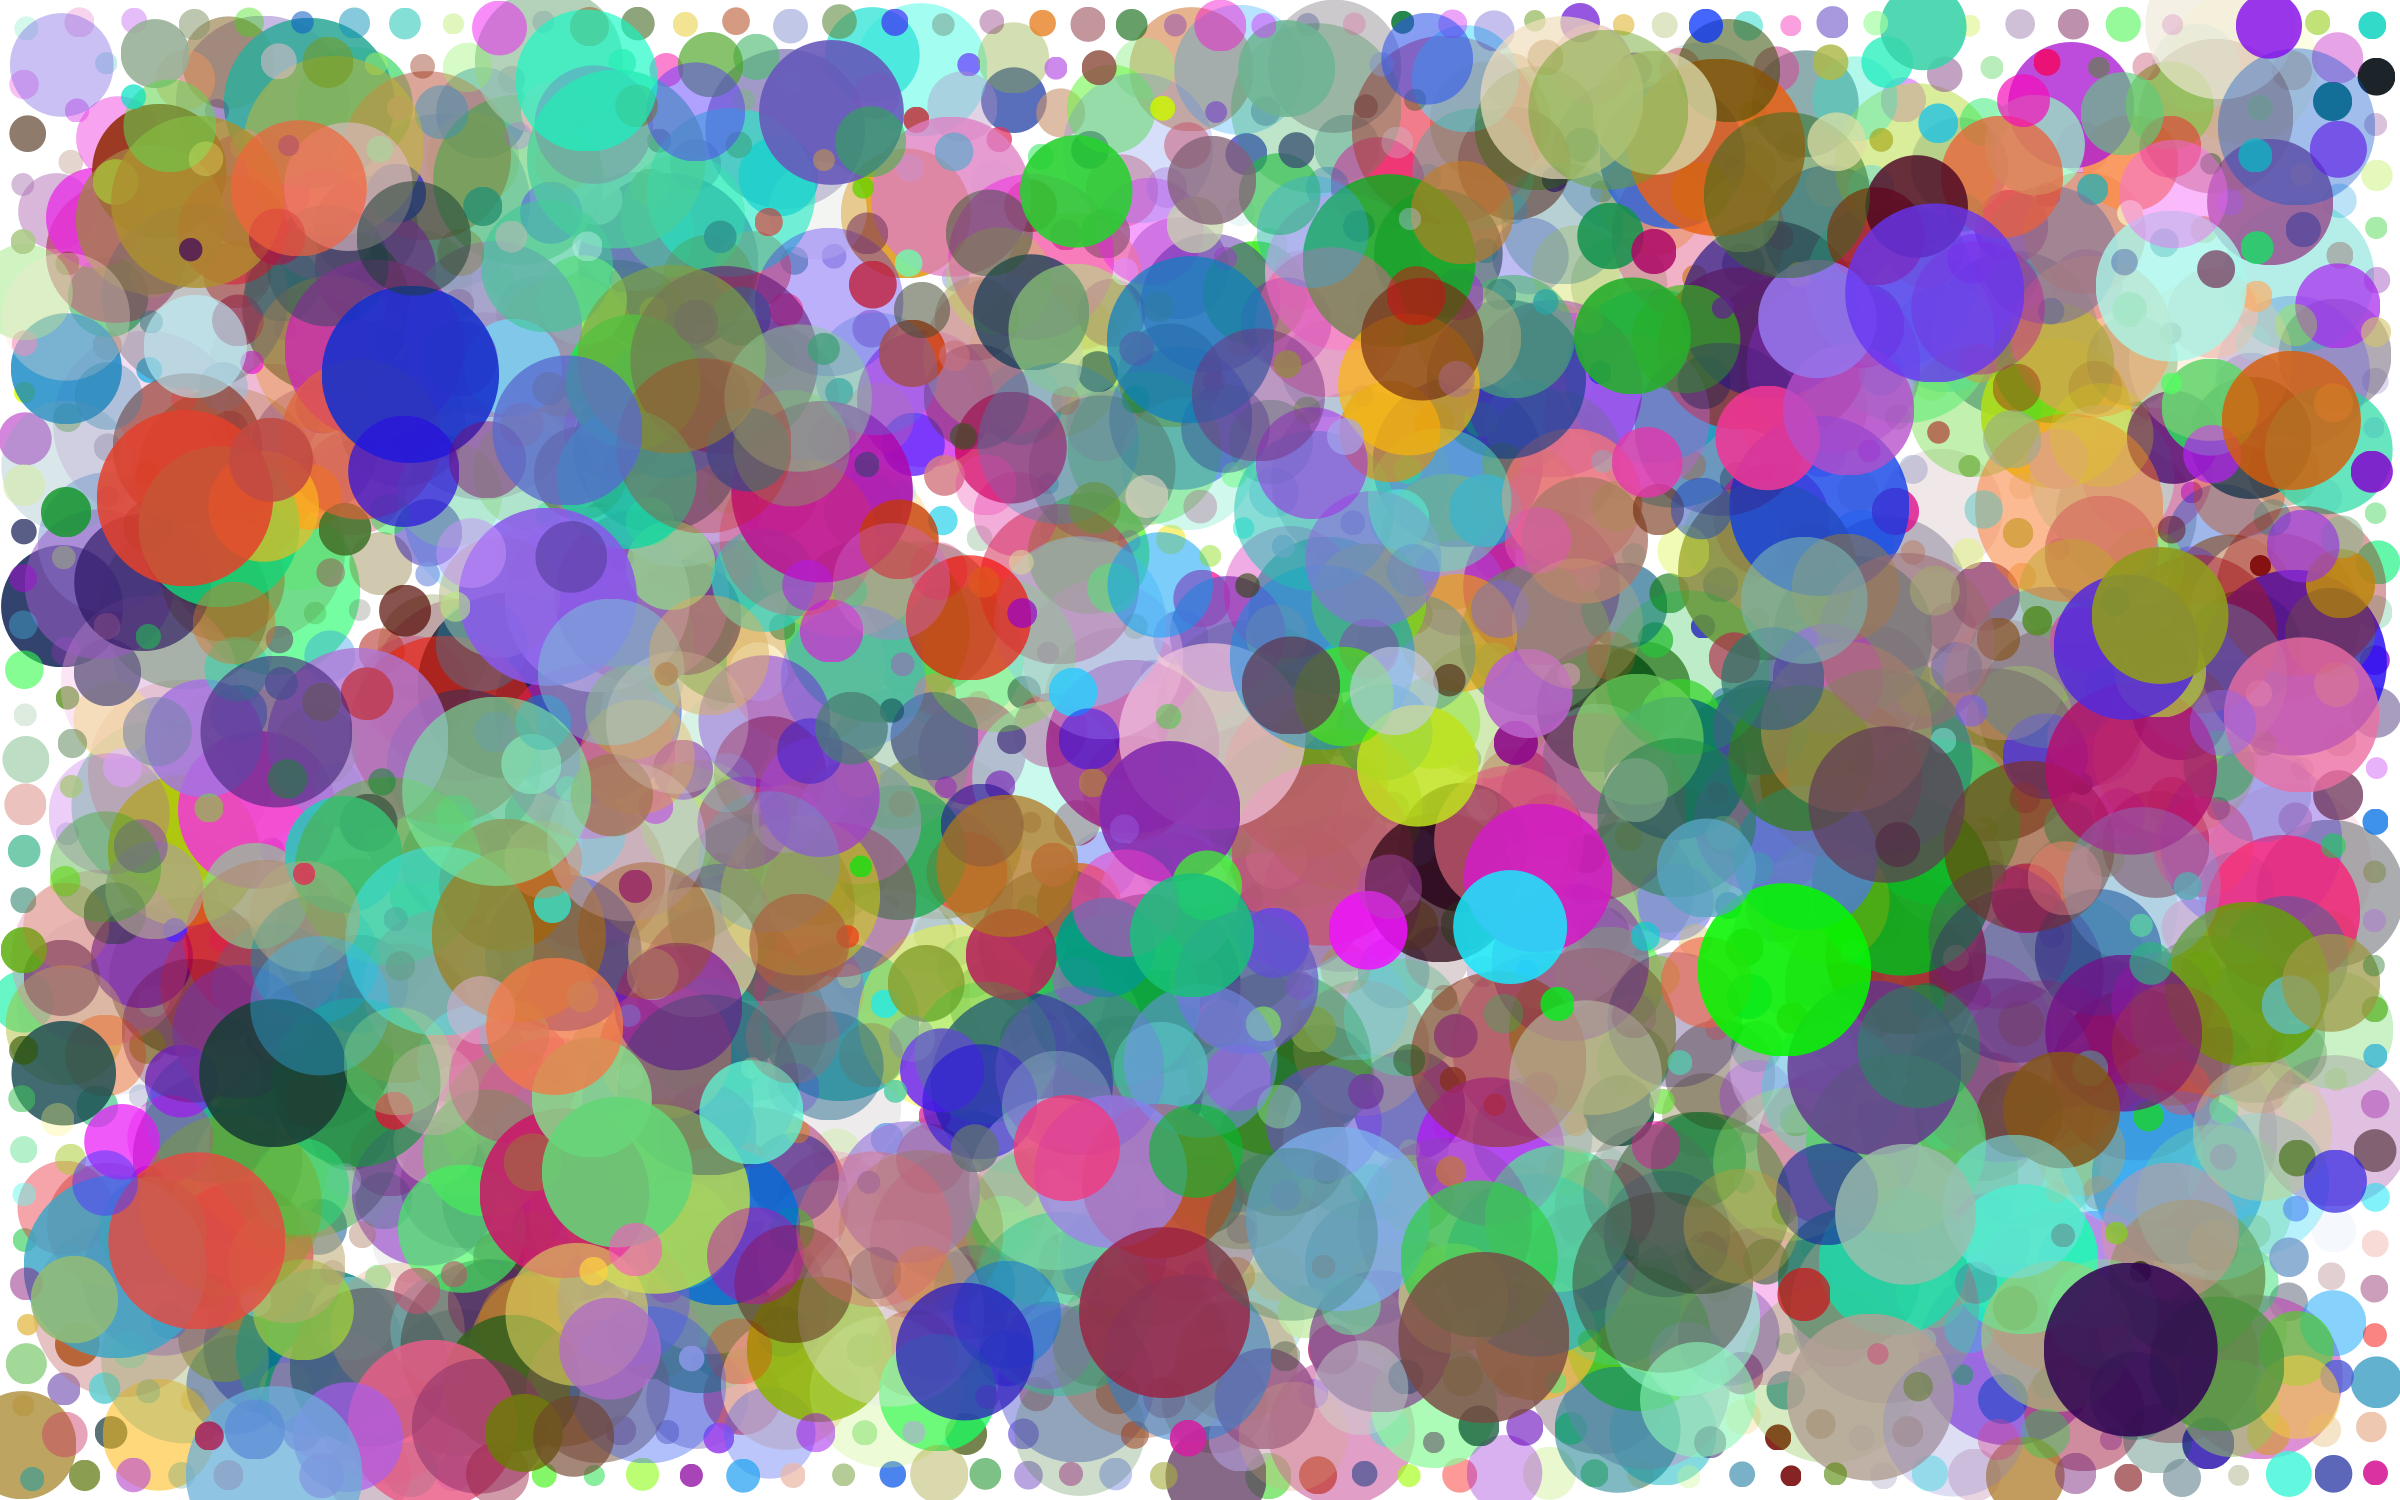 Prismatic Circles Background 2 by GDJ